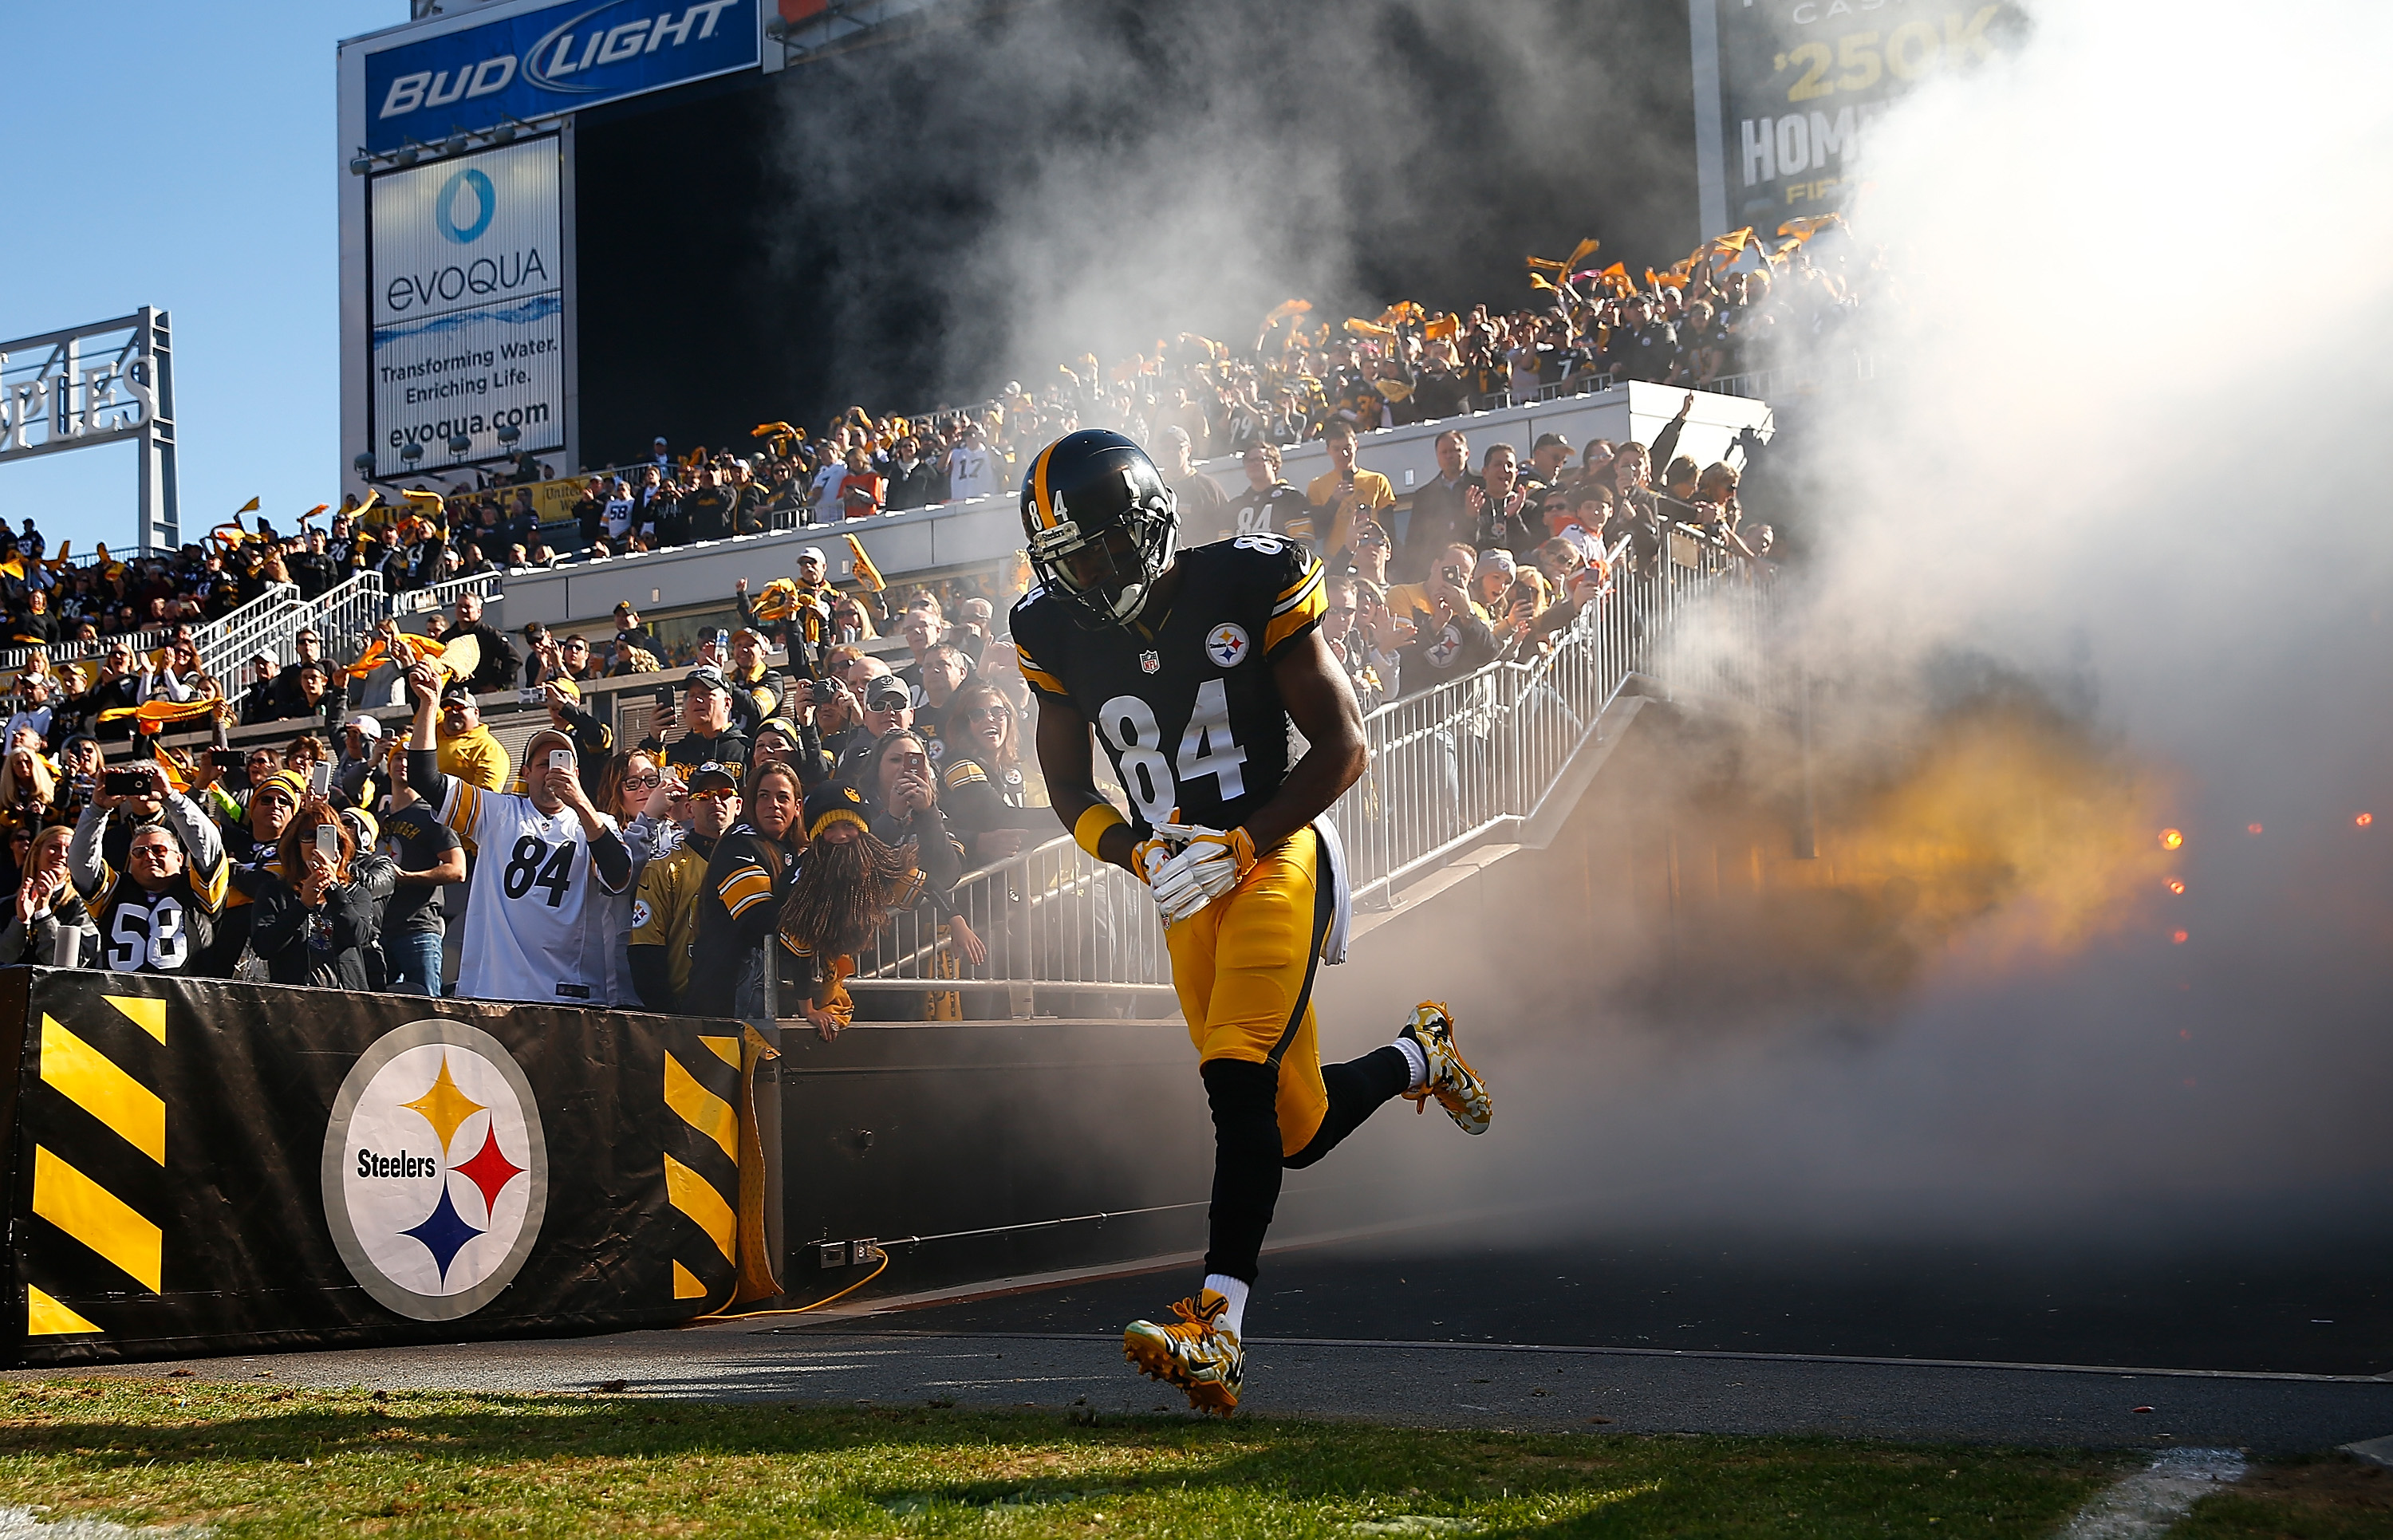 Steelers wideout Antonio Brown, winner of the 2015 NFL.com Fantasy Player of the Year Award, emerges from the tunnel at Heinz field